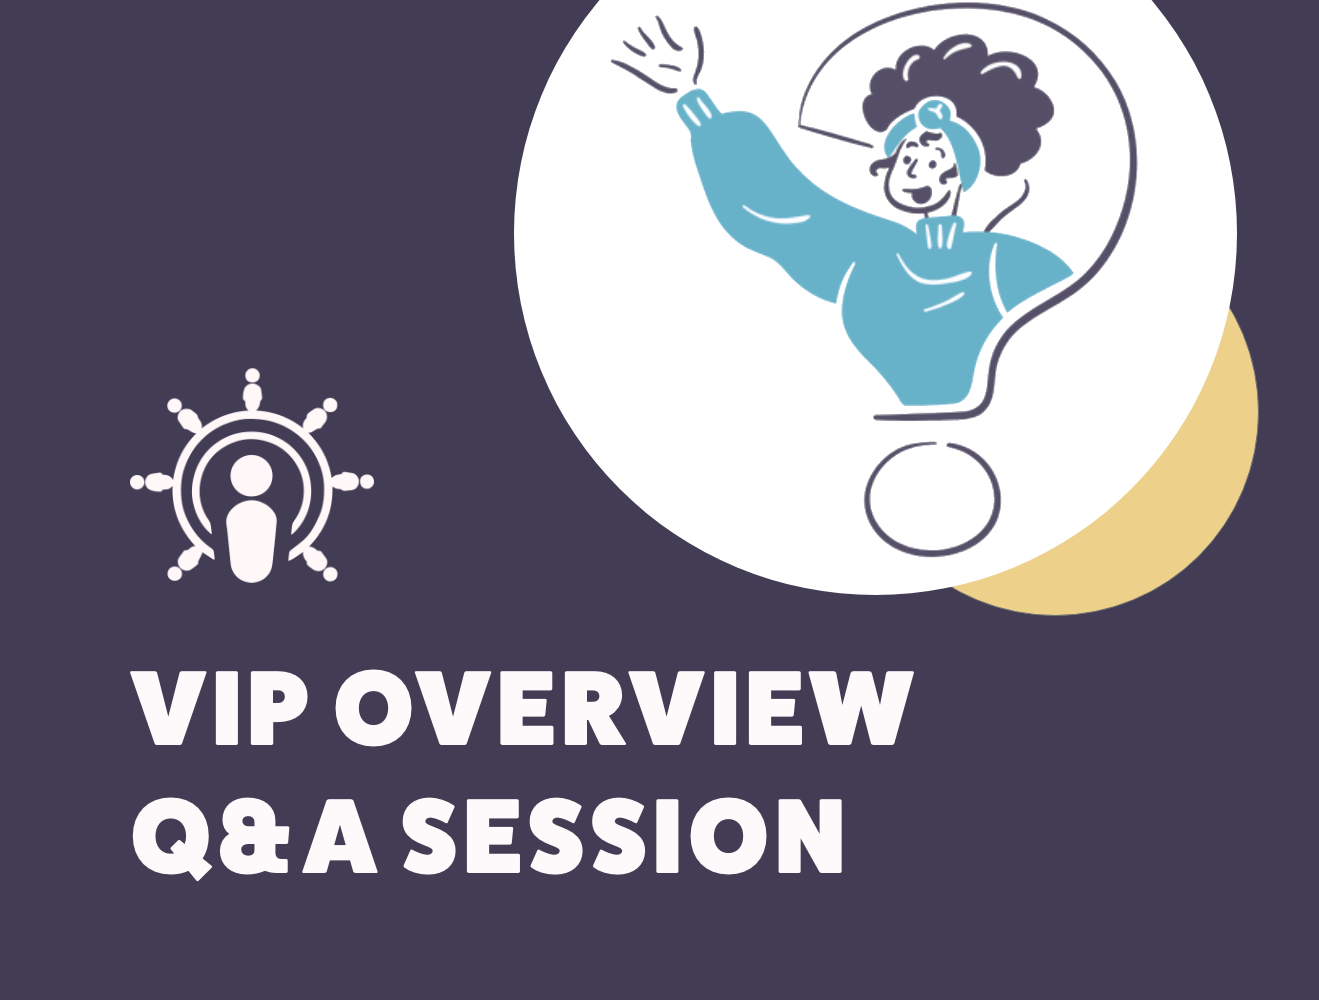 VIP Overview - Q&A